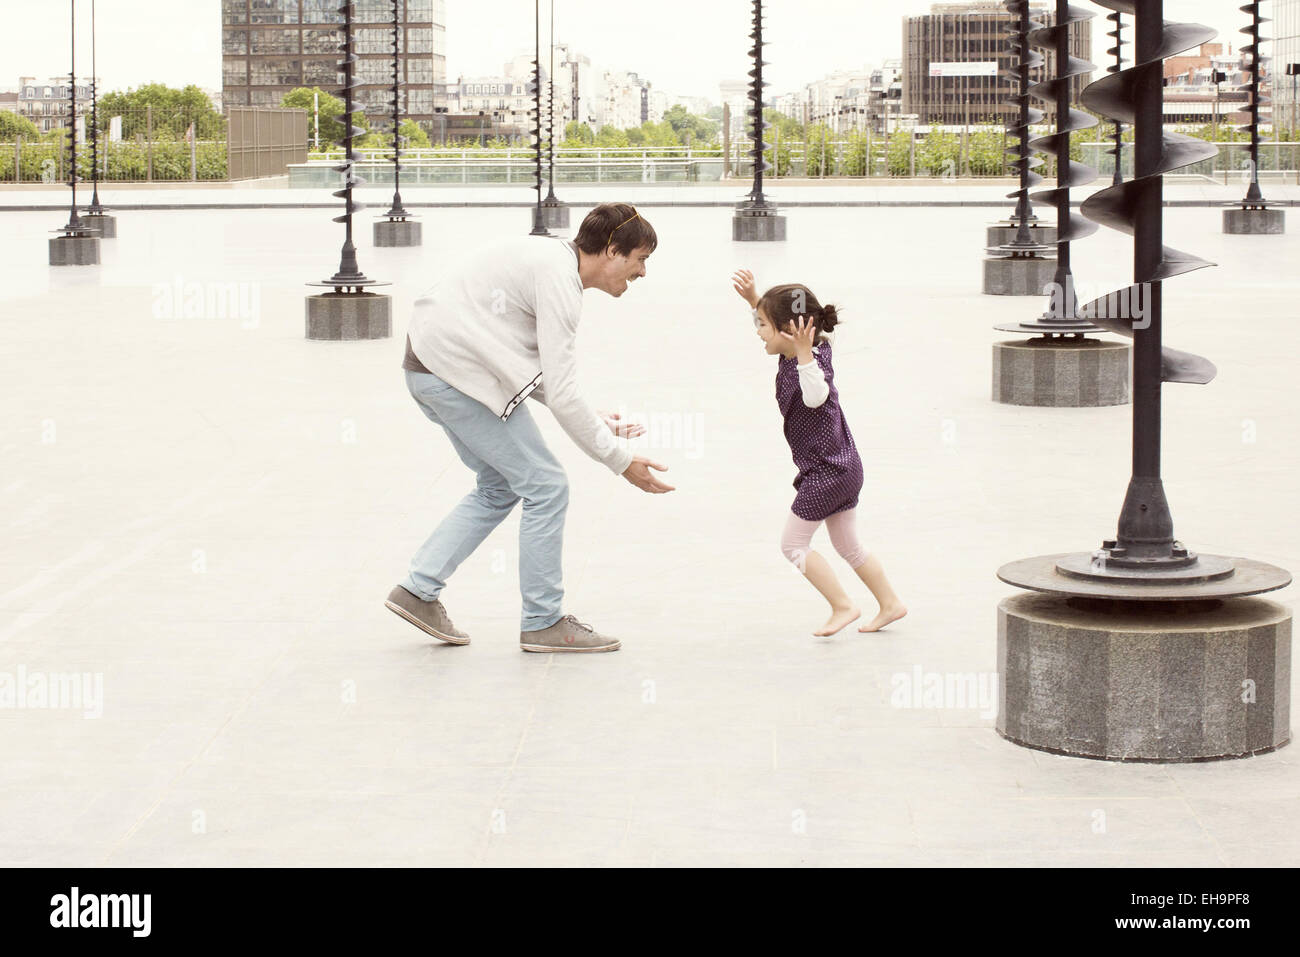 Father and daughter playing together in urban park - Stock Image